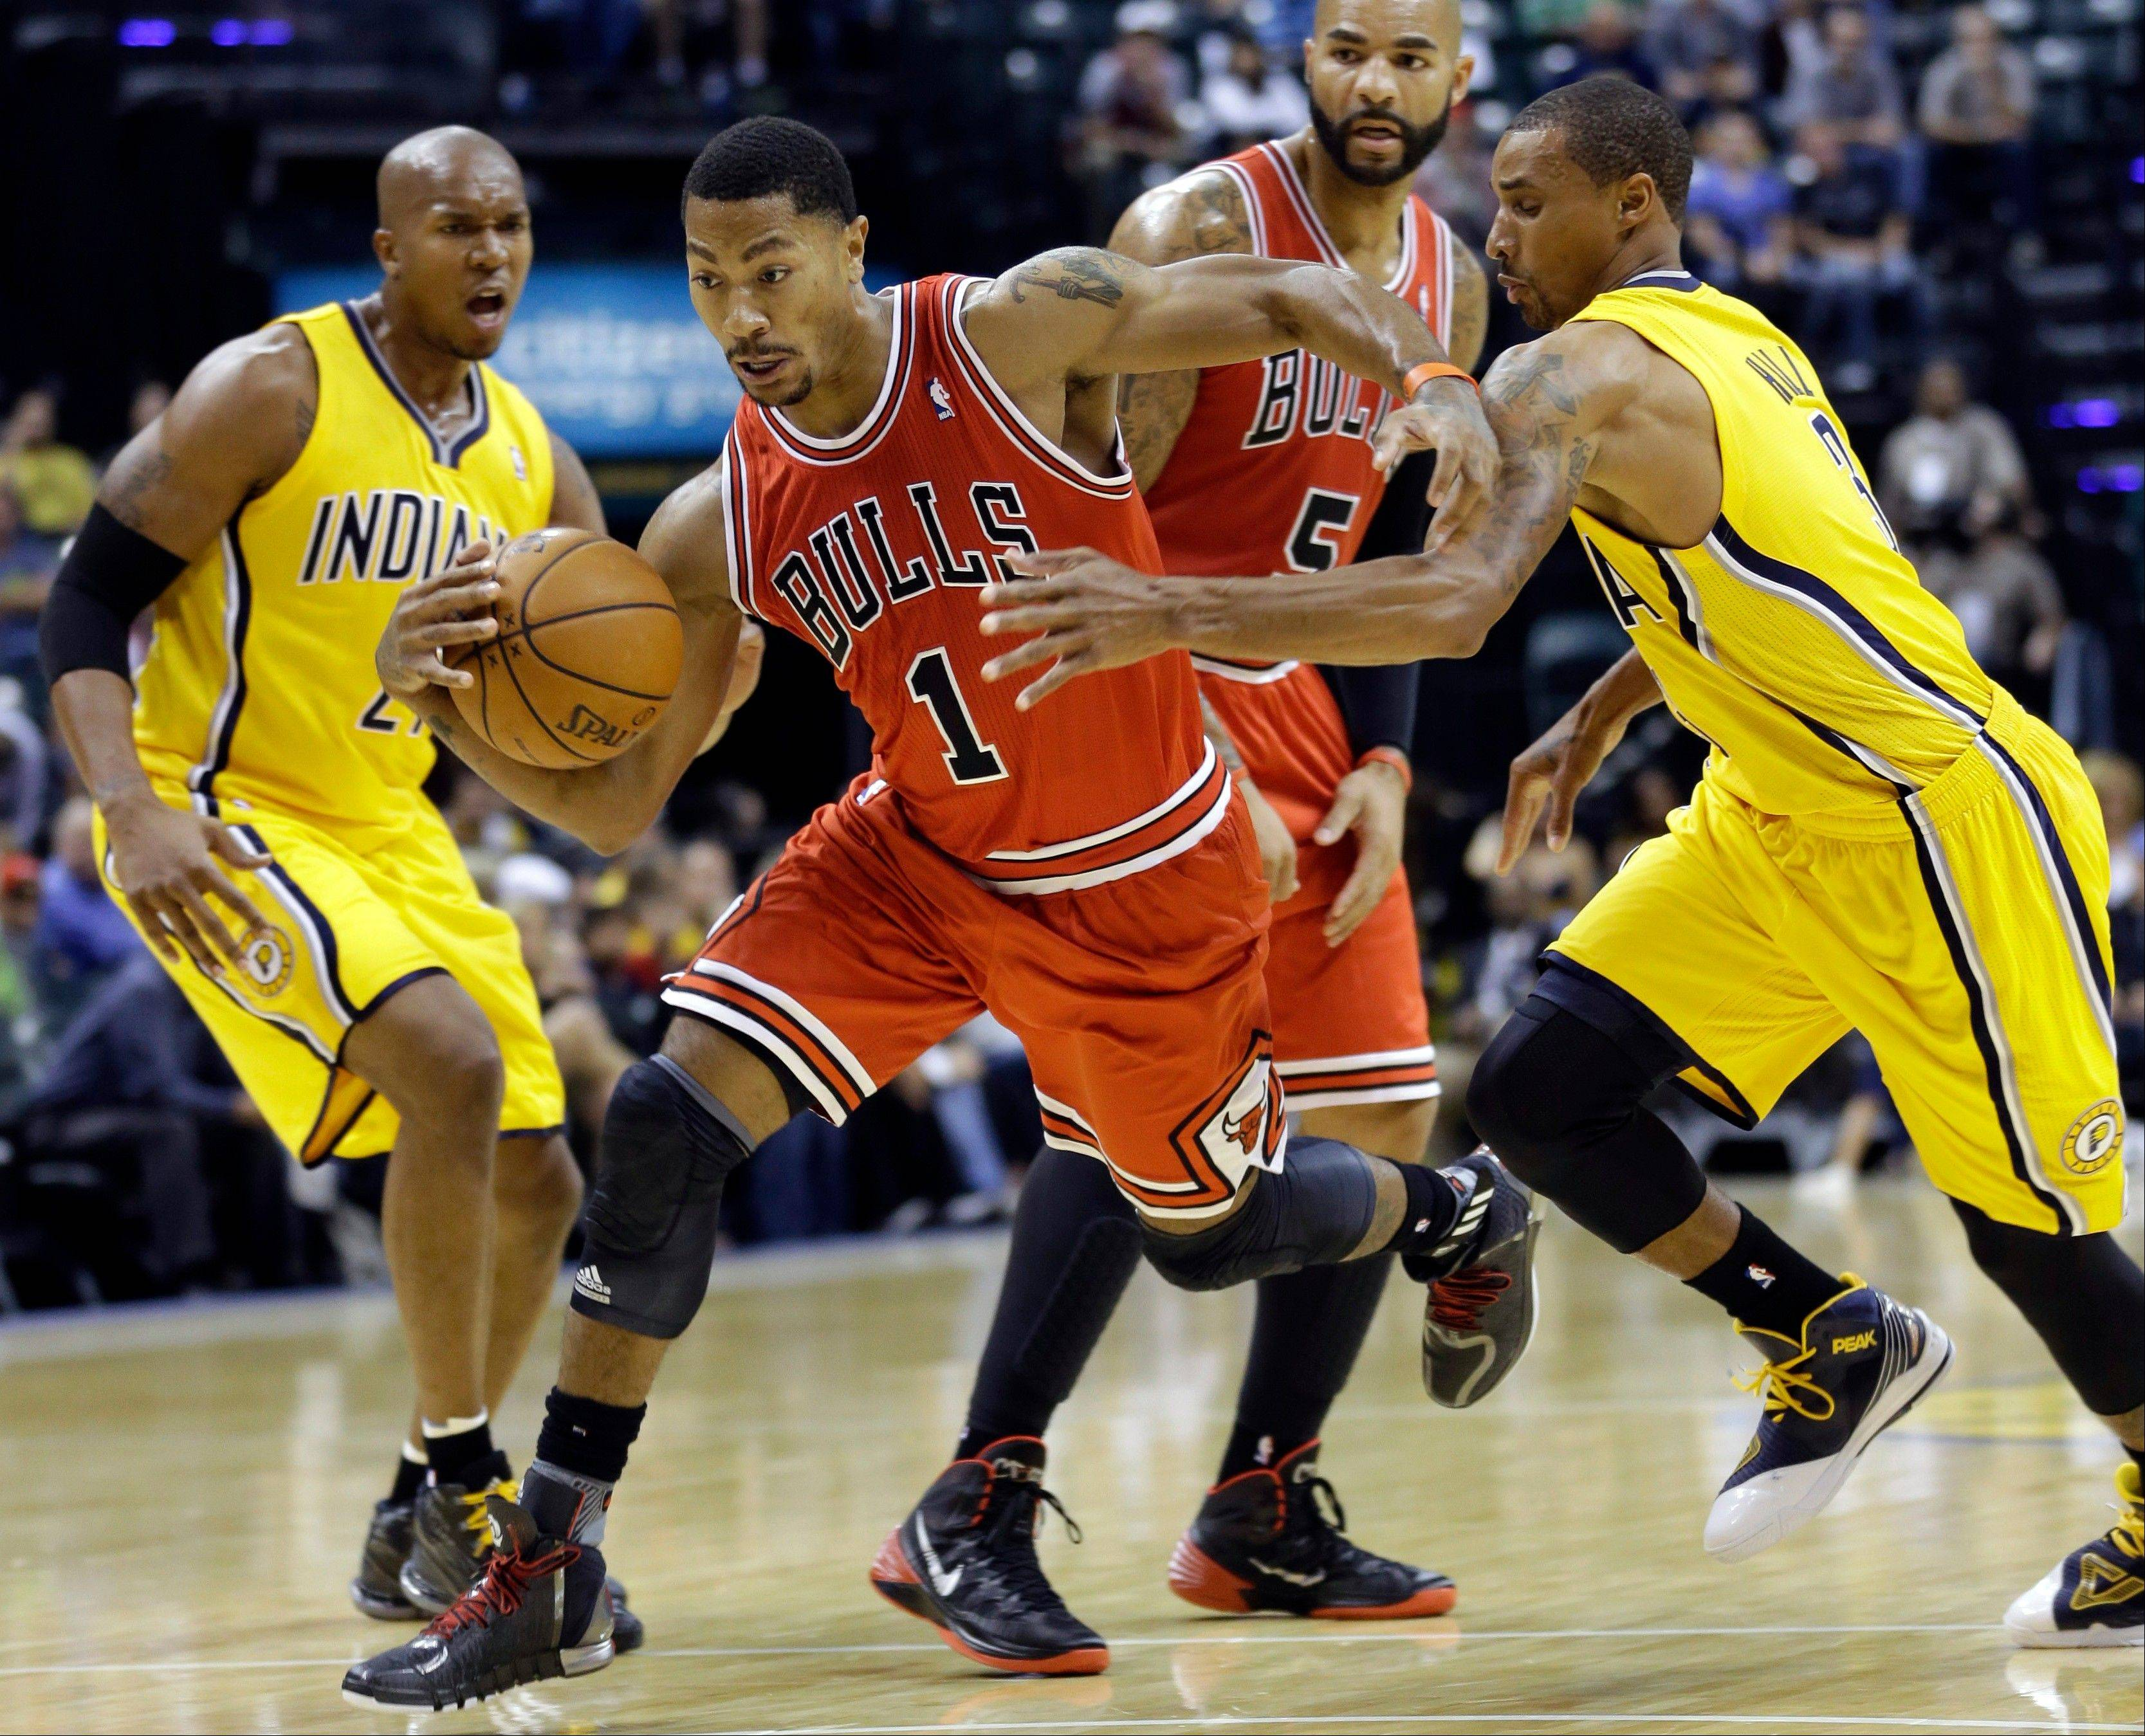 Bulls guard Derrick Rose, playing in his first game since April 28, 2013, cuts between Pacers guard George Hill, right, and power forward David West during Saturday night's preseason action.